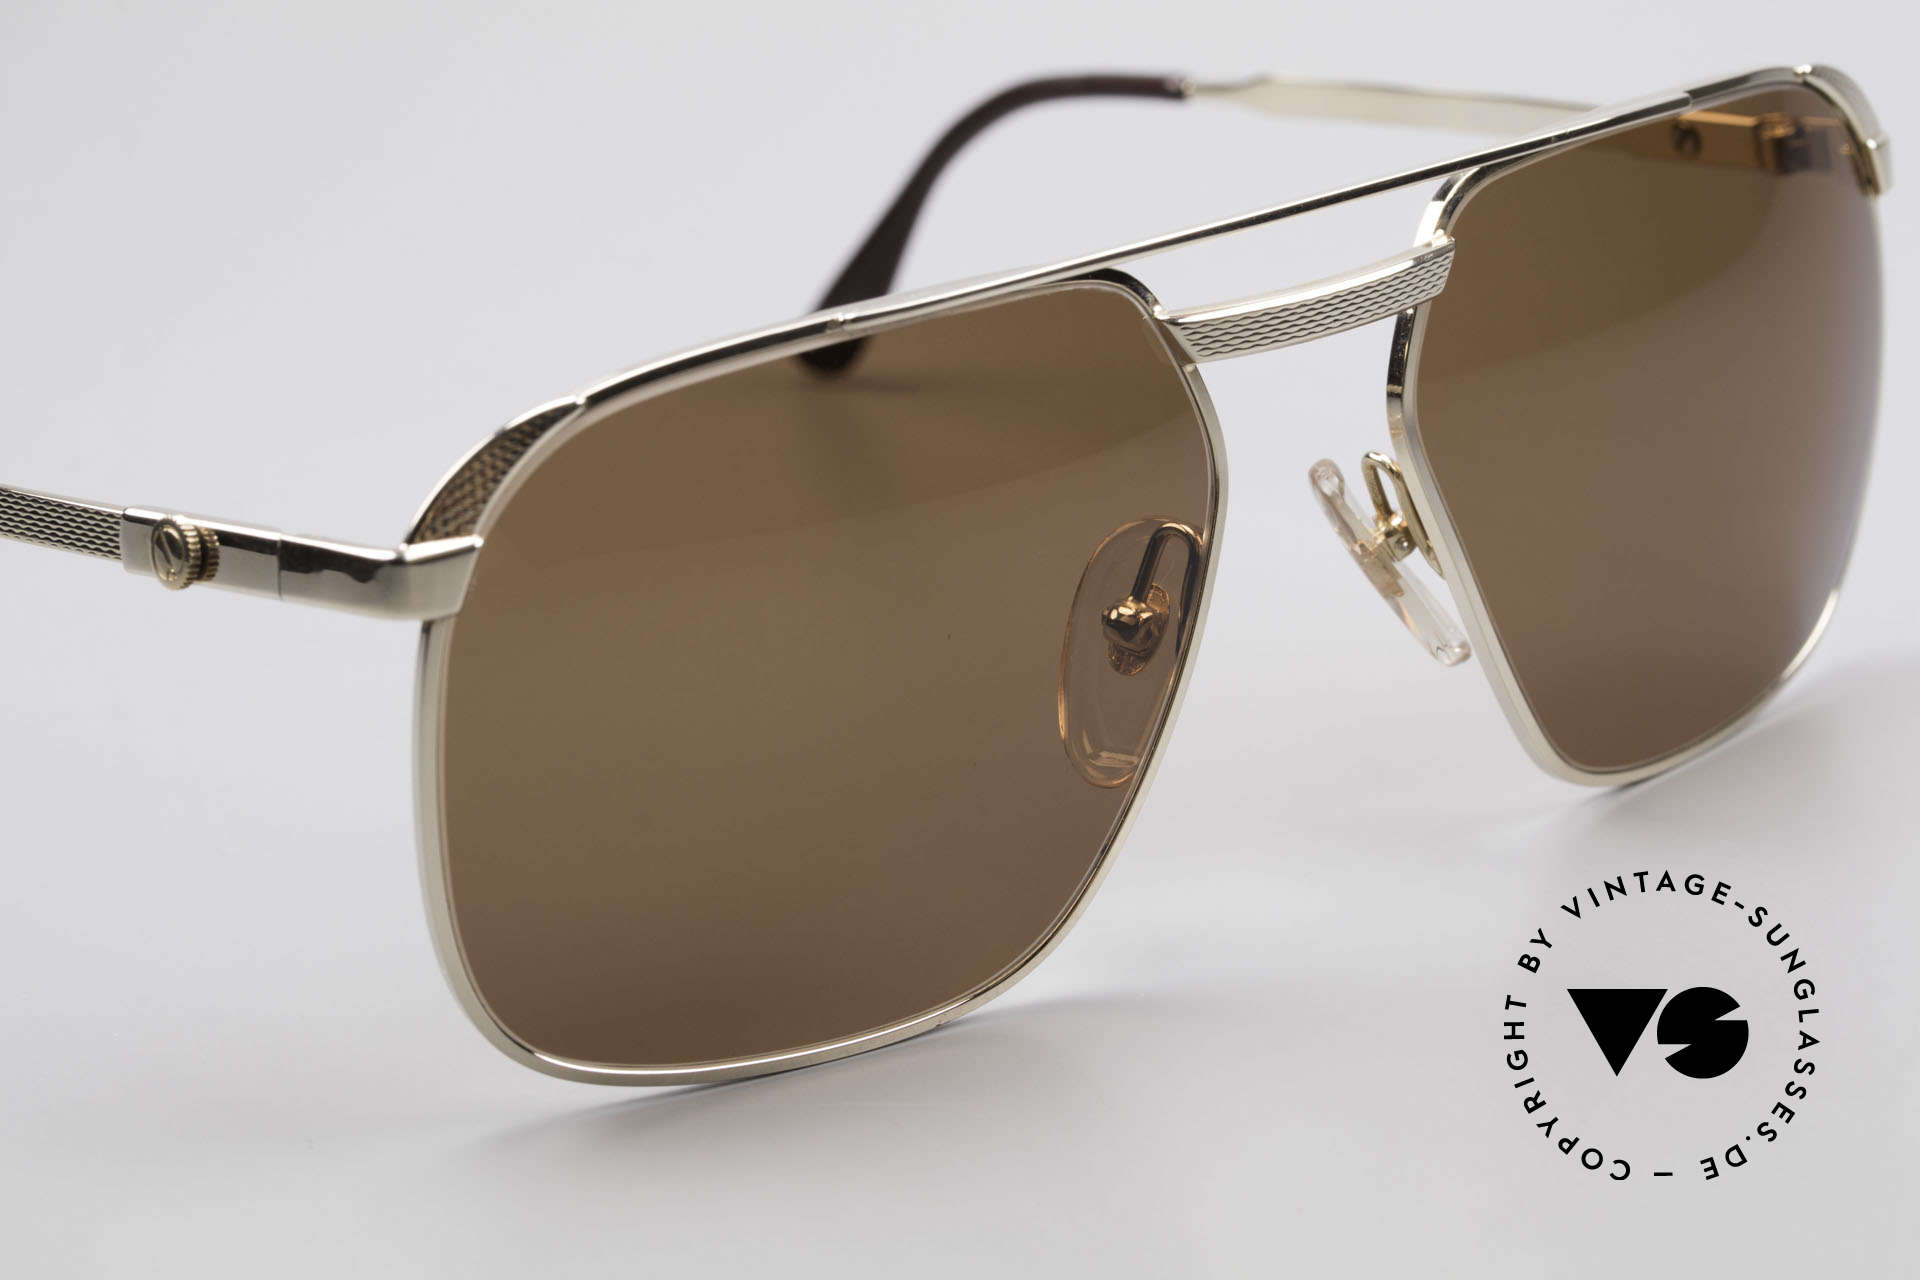 Dunhill 6011 Gold Plated Sunglasses 80's, unworn, NOS (like all our VINTAGE Dunhill sunglasses), Made for Men